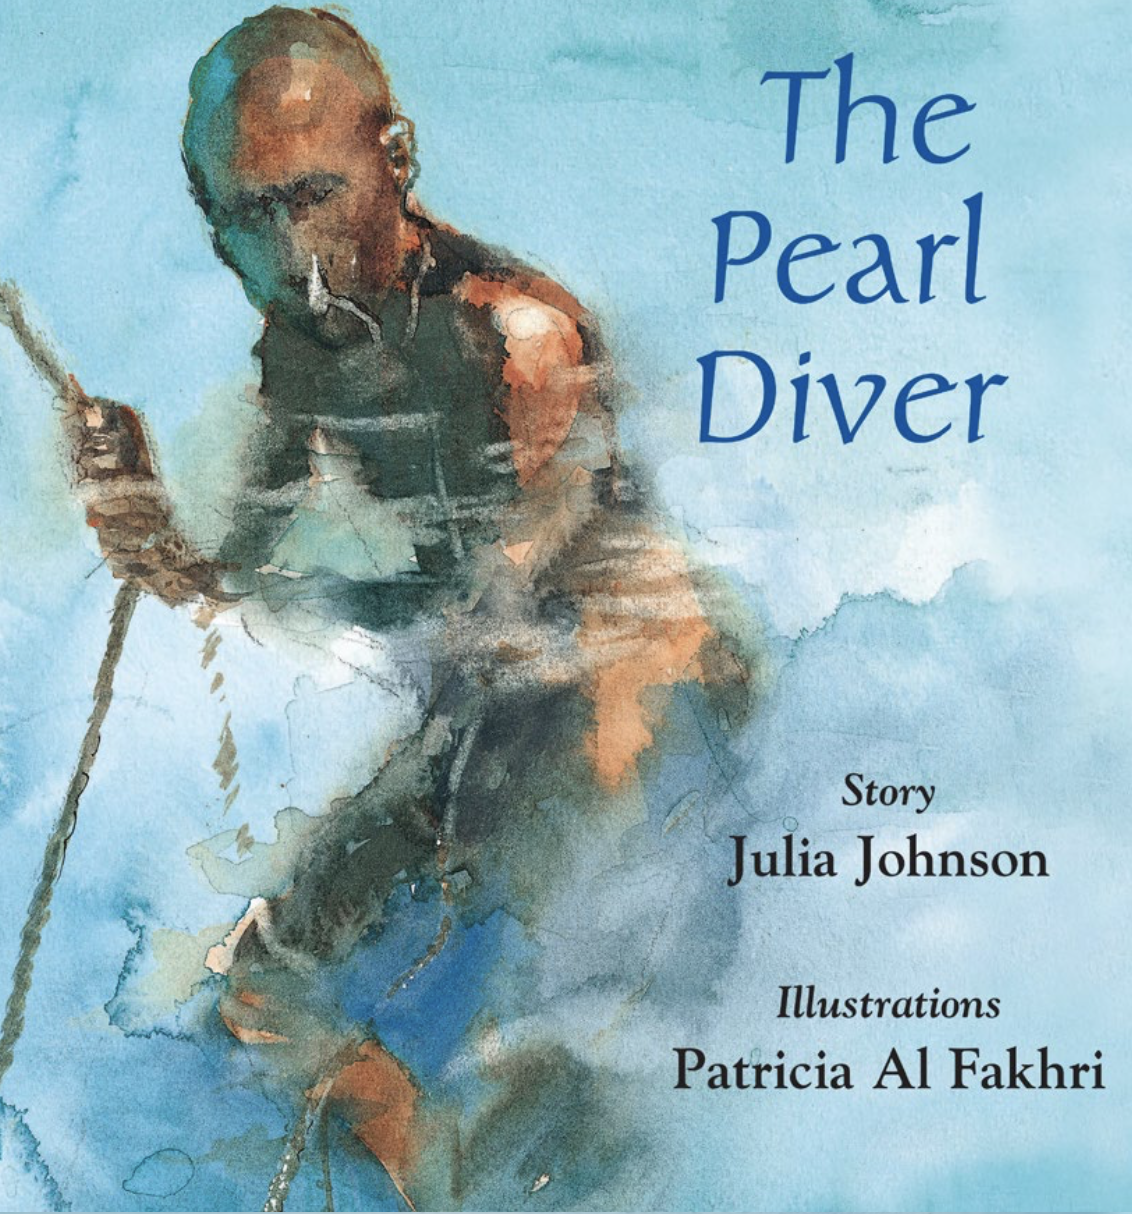 The Pearl Diver Book Cover